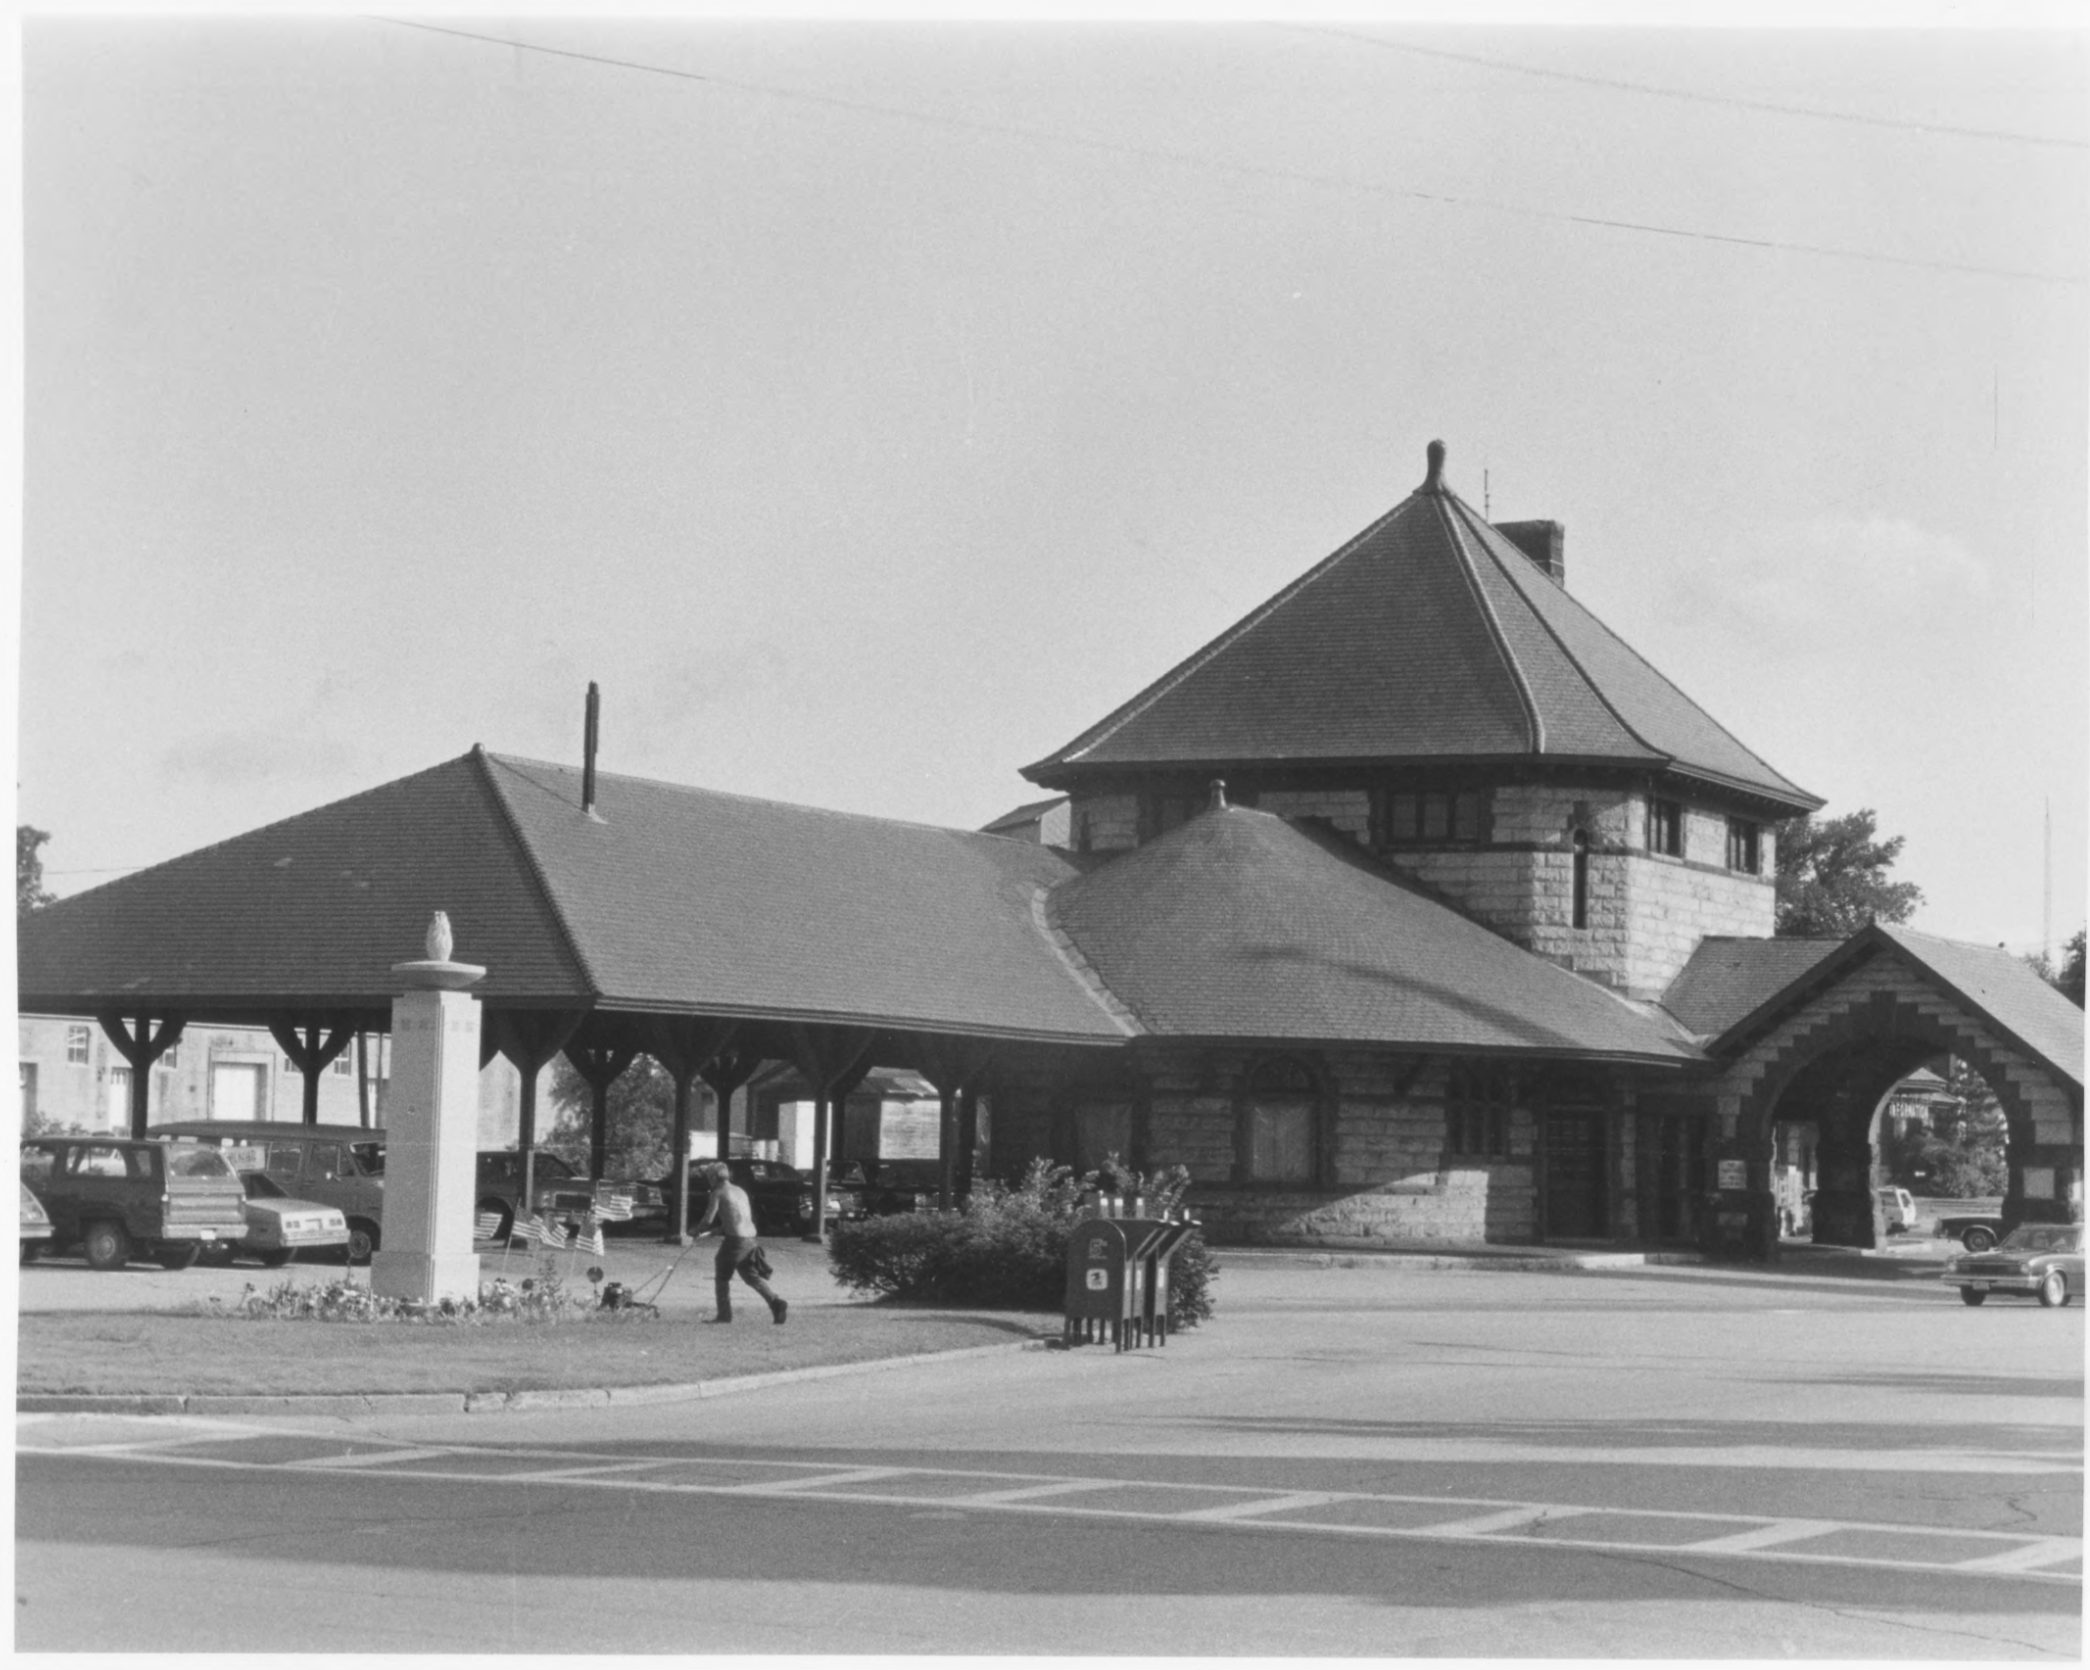 Laconia Station Southern Exterior by Roger P. Akeley, Jr. In July of 1981 Provided by NPS NRHP